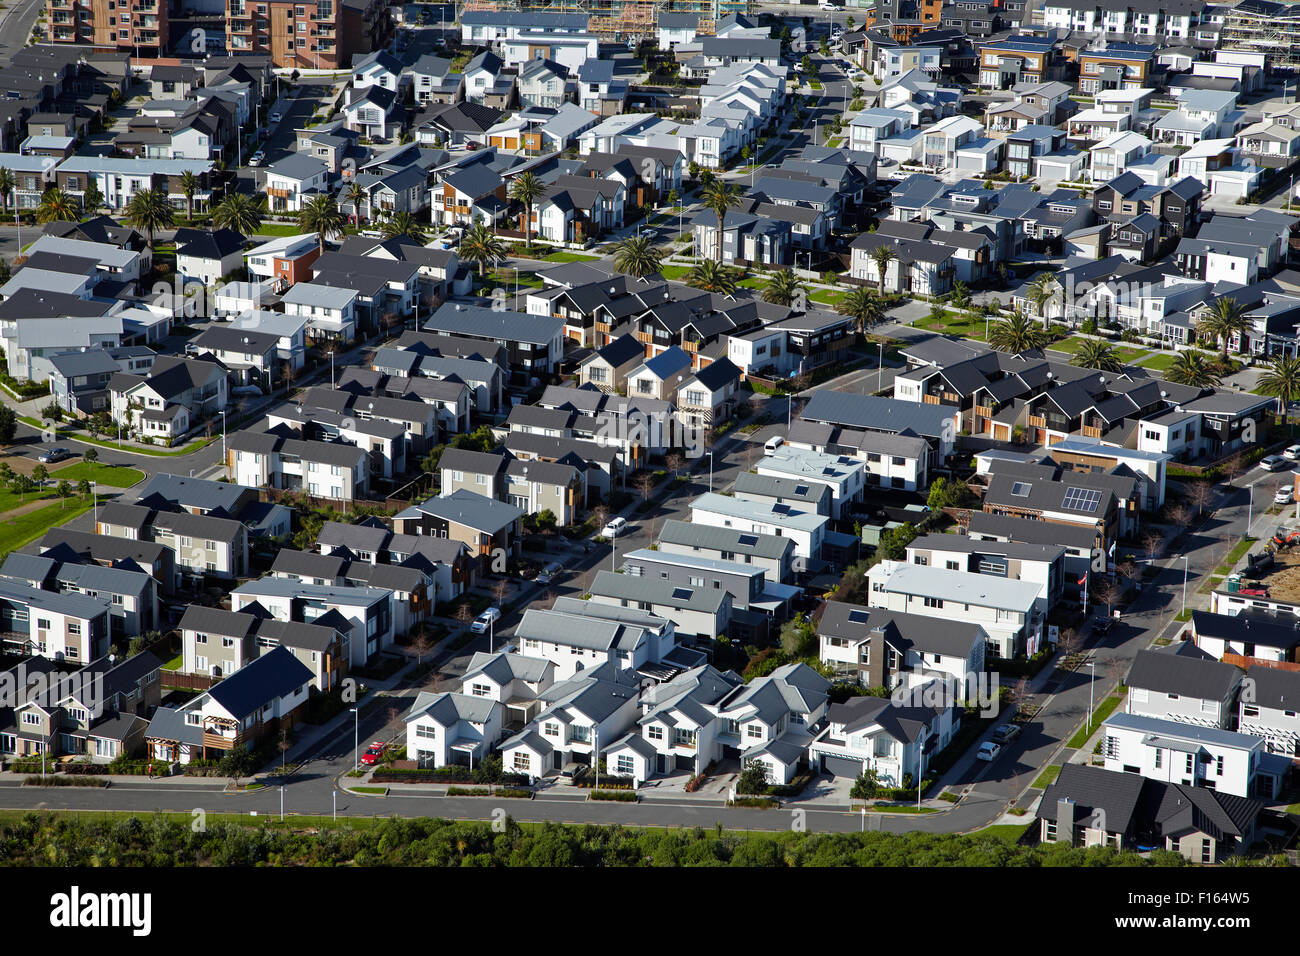 New housing development, Hobsonville, Auckland, North Island, New Zealand - aerial Stock Photo